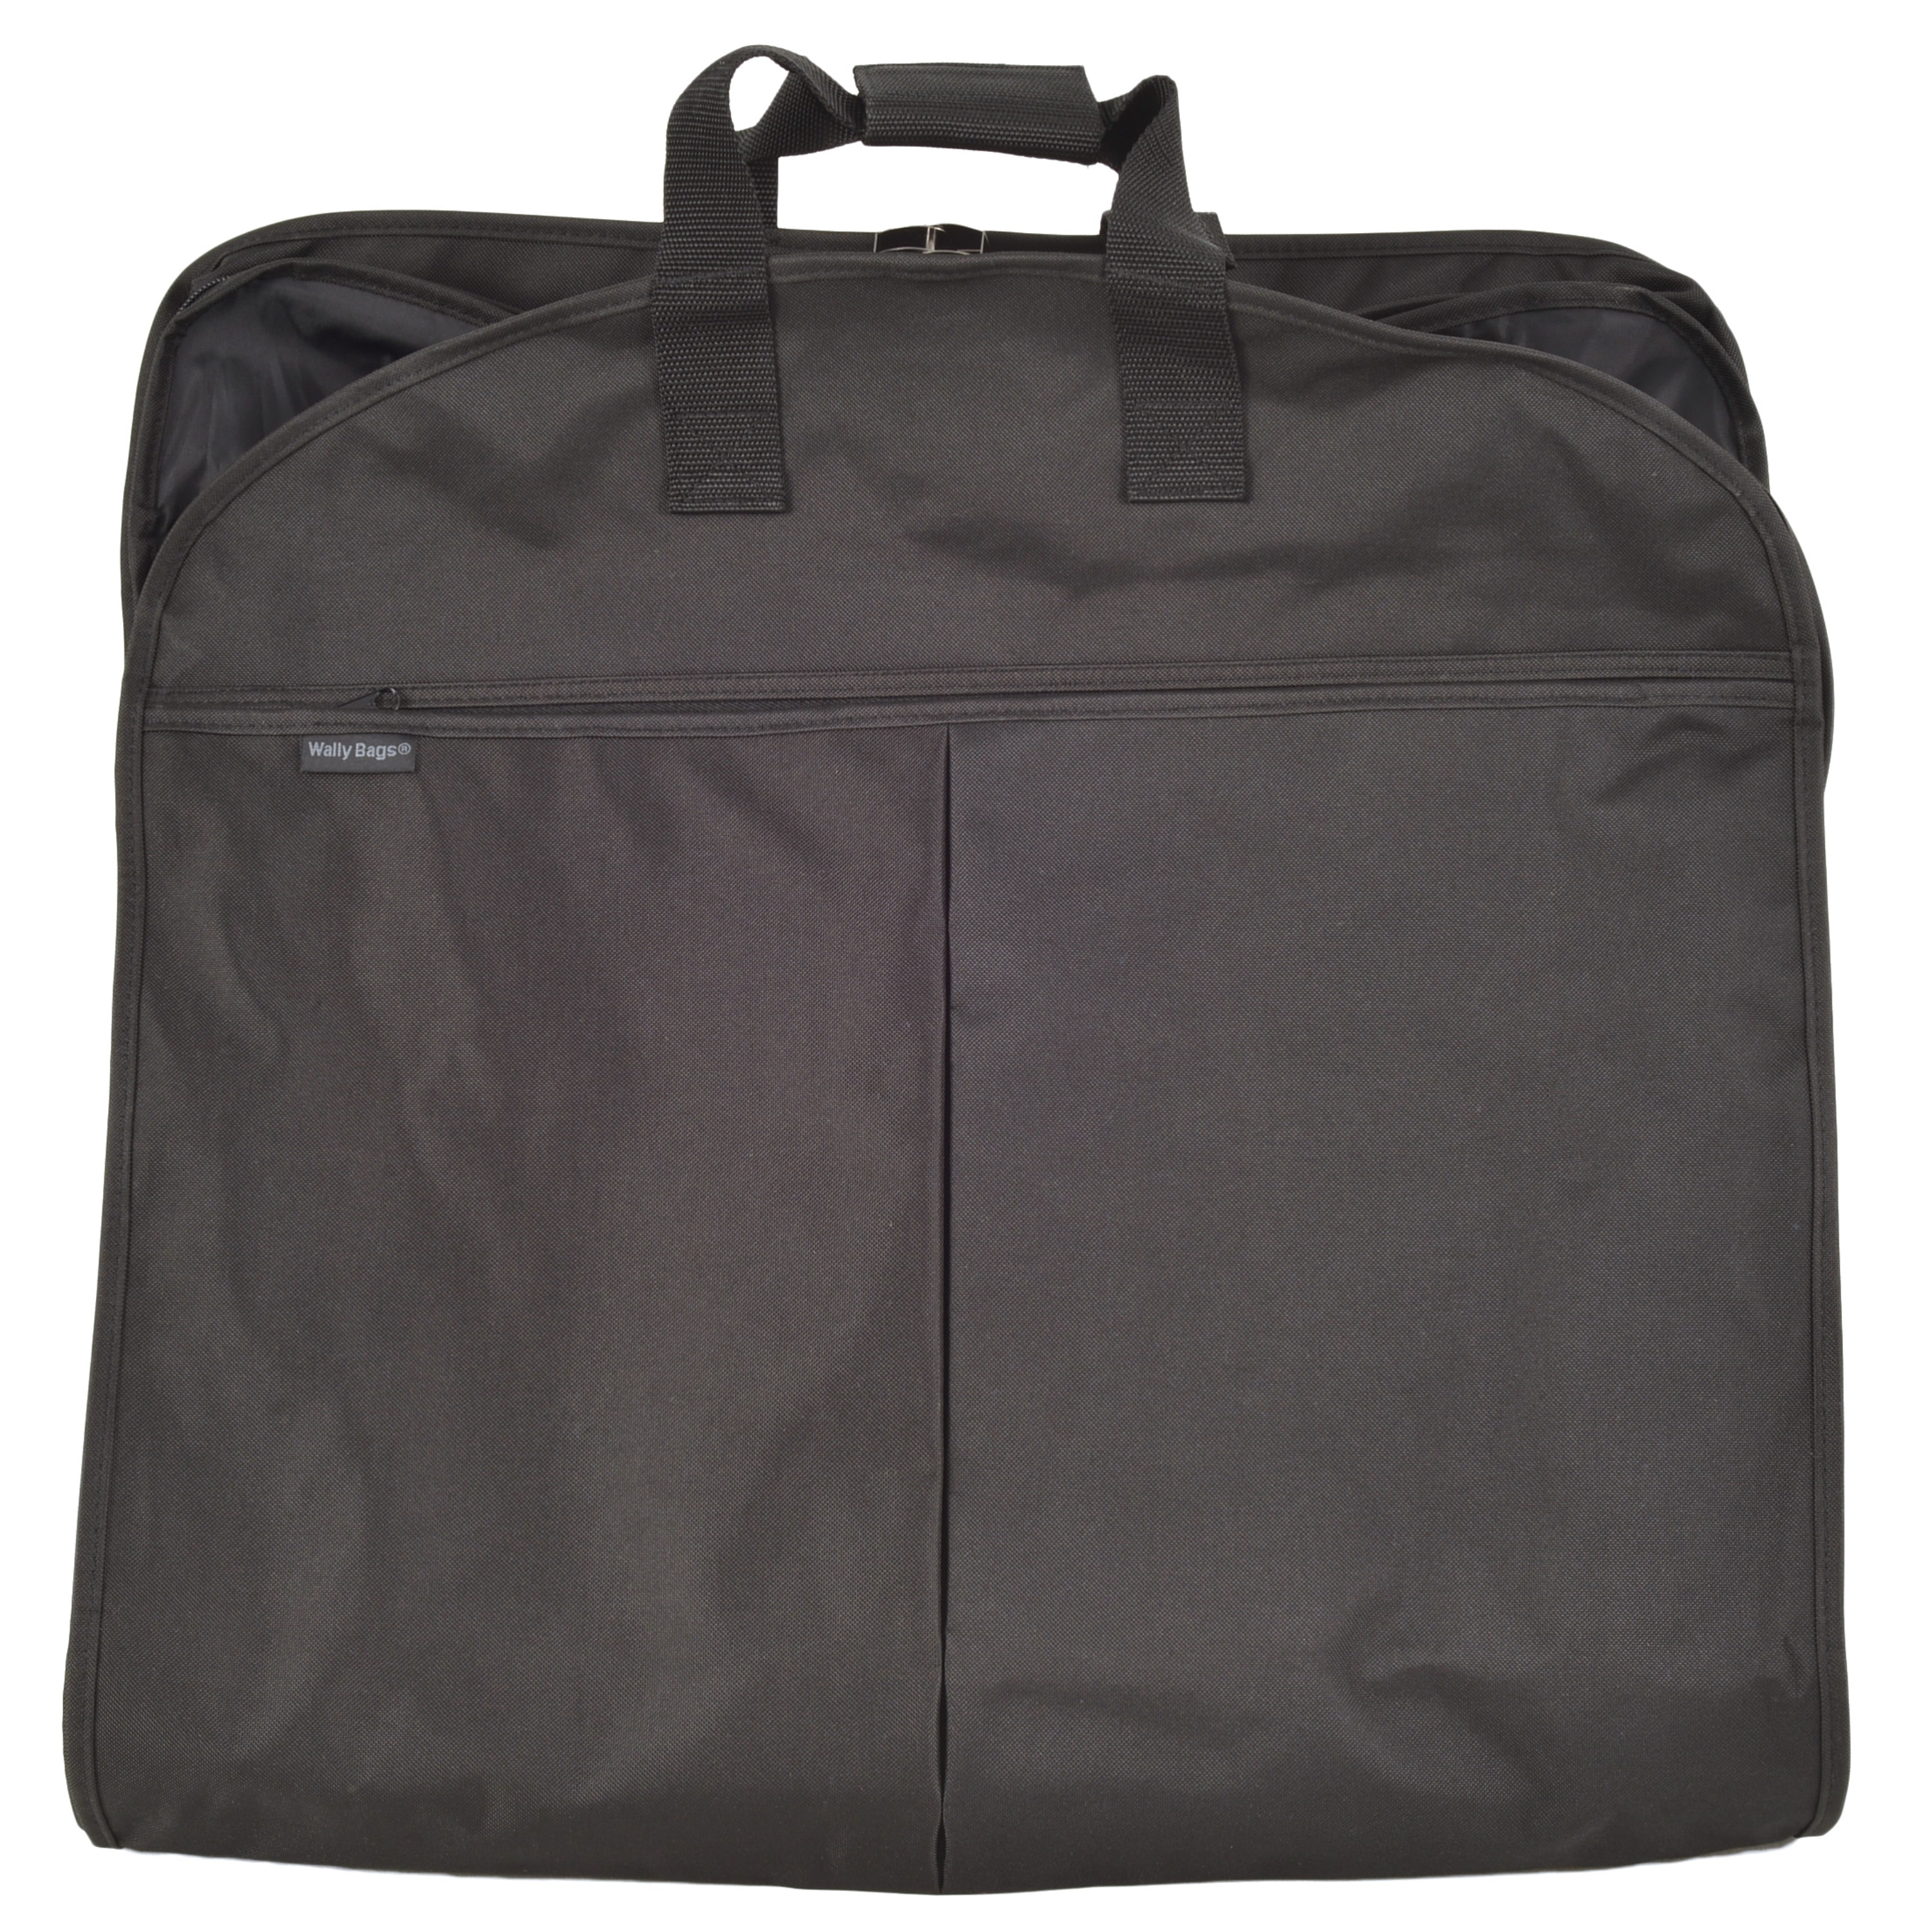 Wallybags 52 Inch Extra Capacity Garment Bag With Pockets Free Shipping Today 7604275